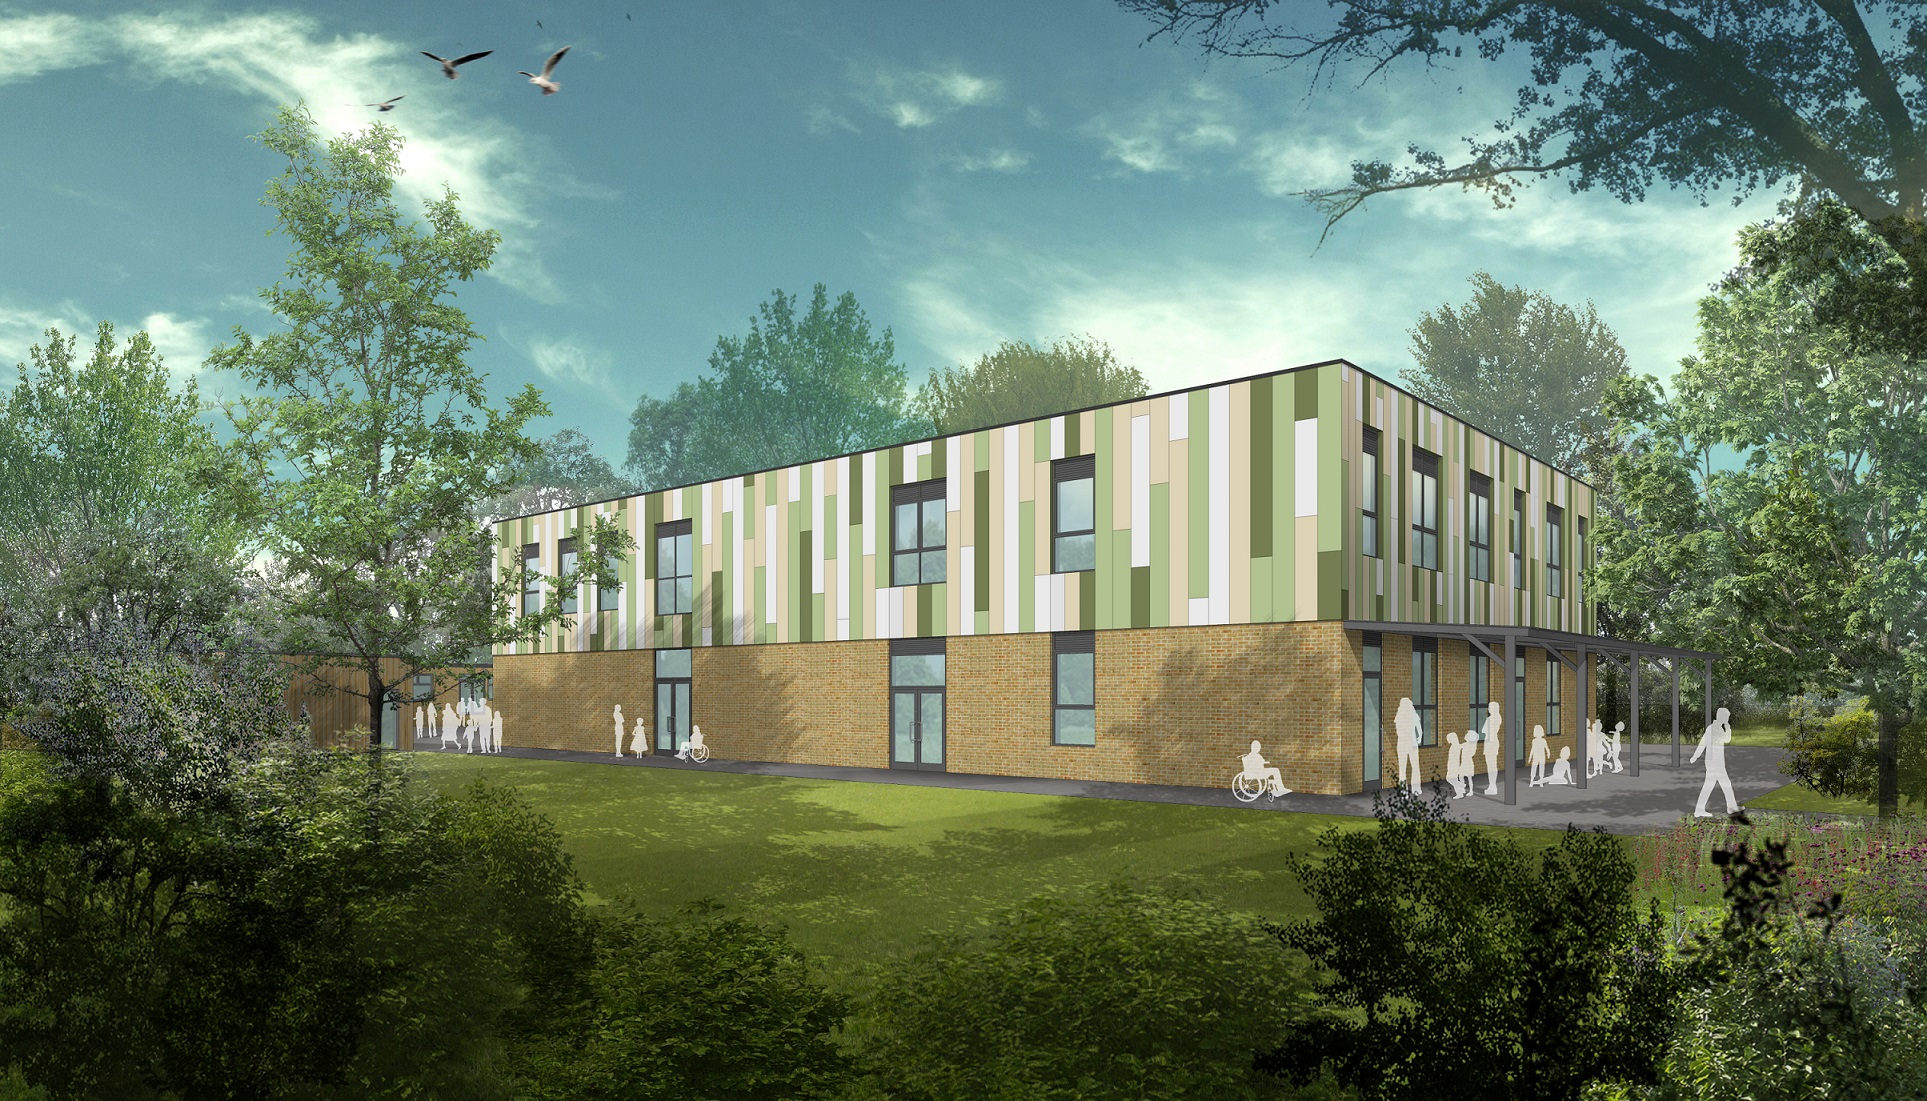 Works start on key SEND schools in Lincolnshire as investment continues